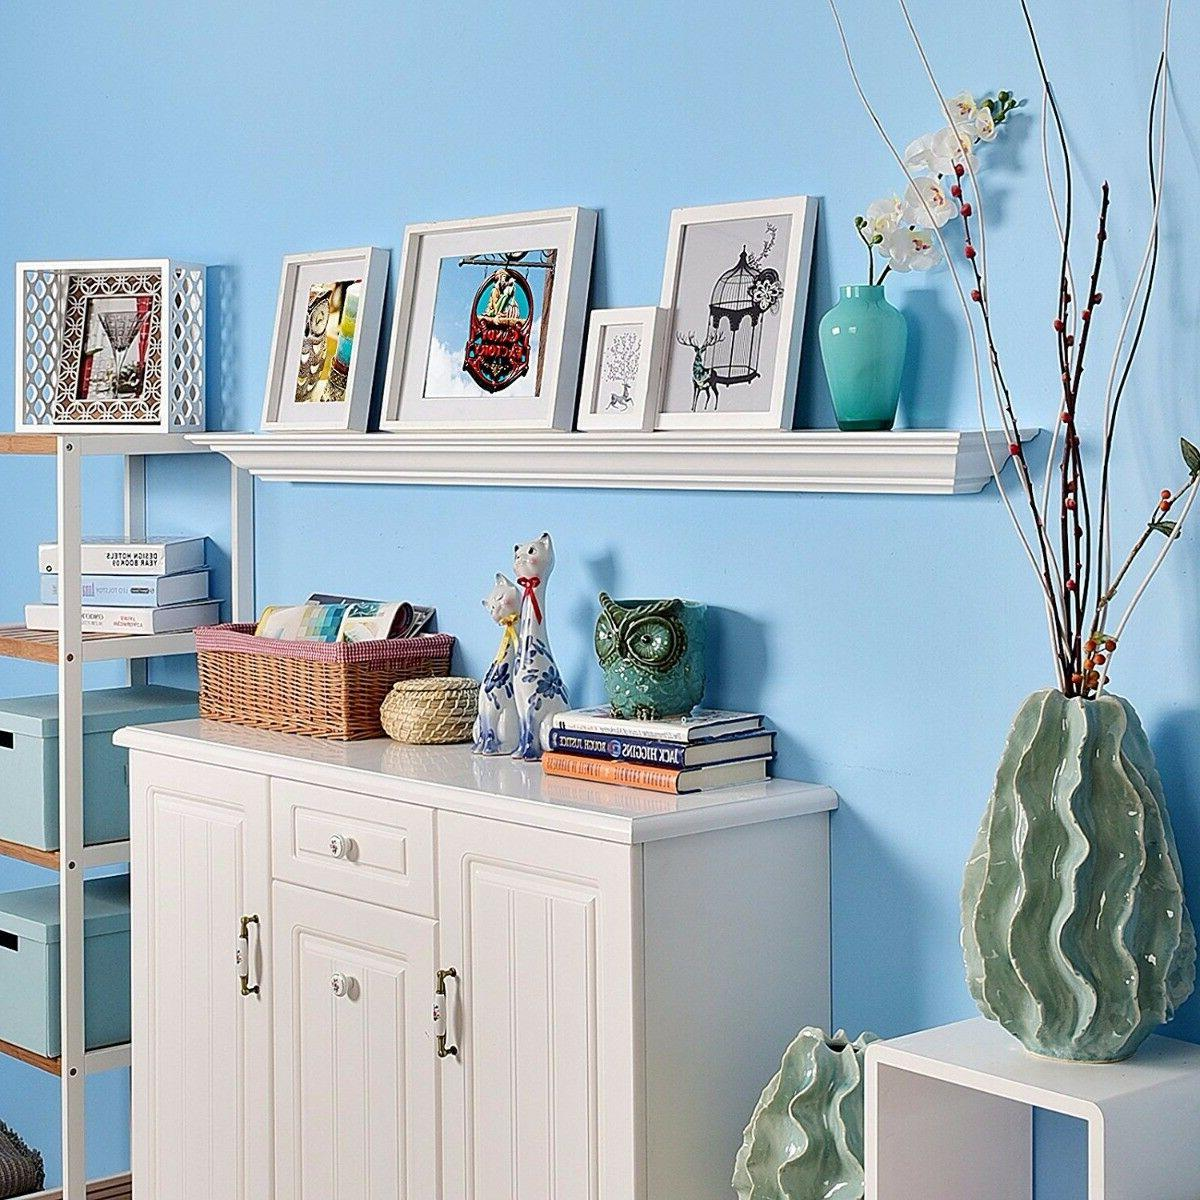 60 Crown Floating Wall Shelf Painted White, Fireplace -